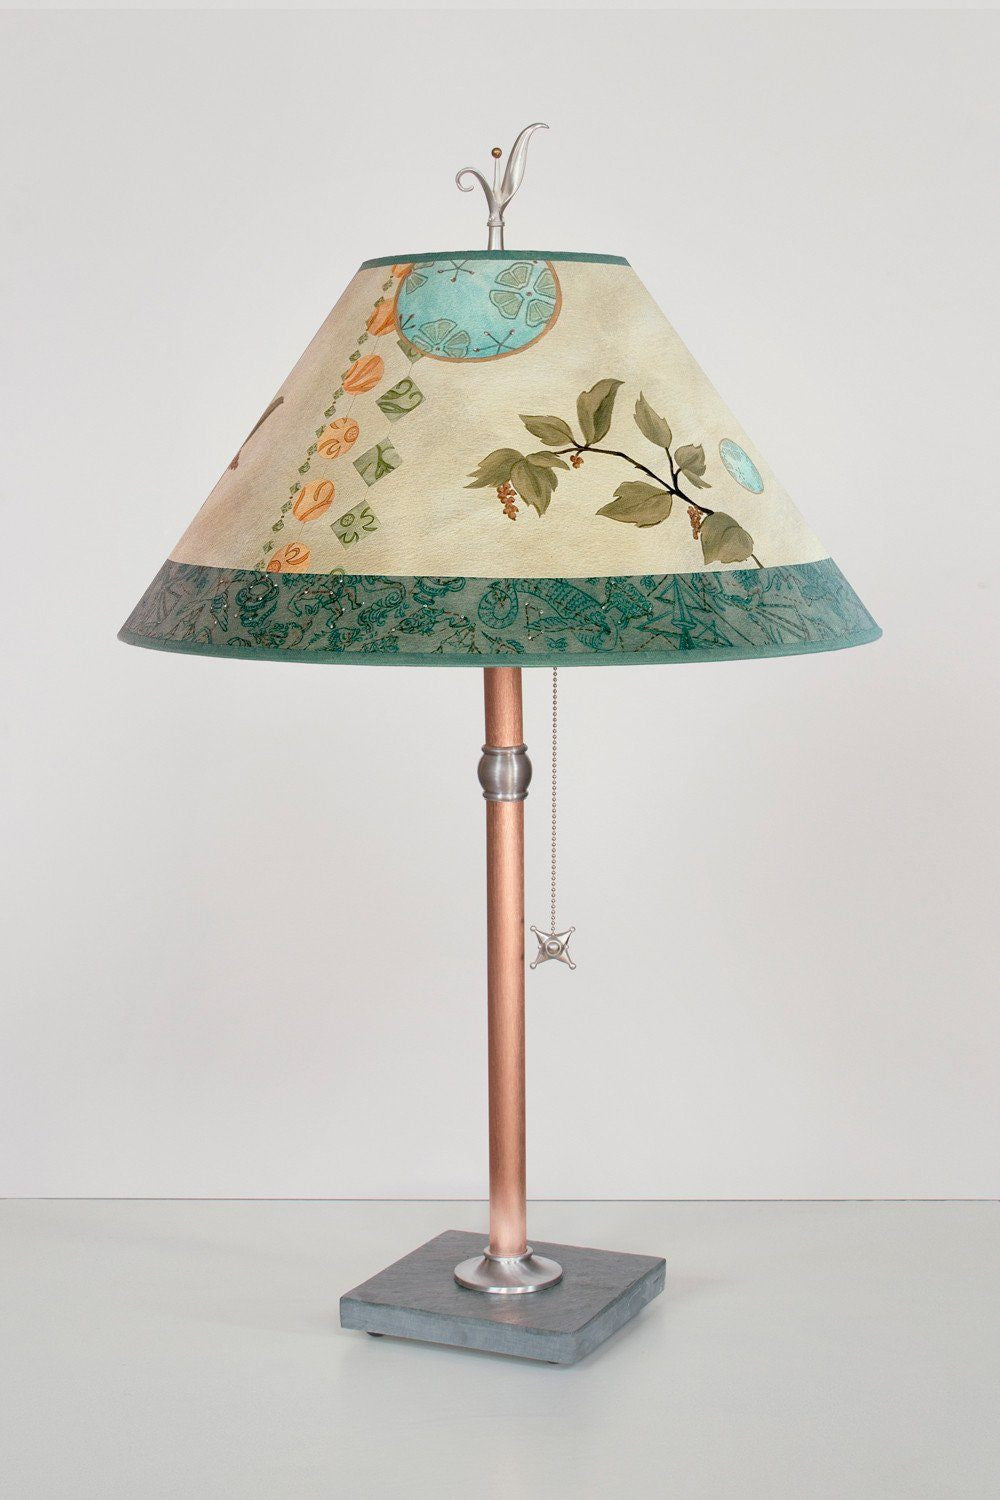 Celestial Leaf large conical copper table lamp lit